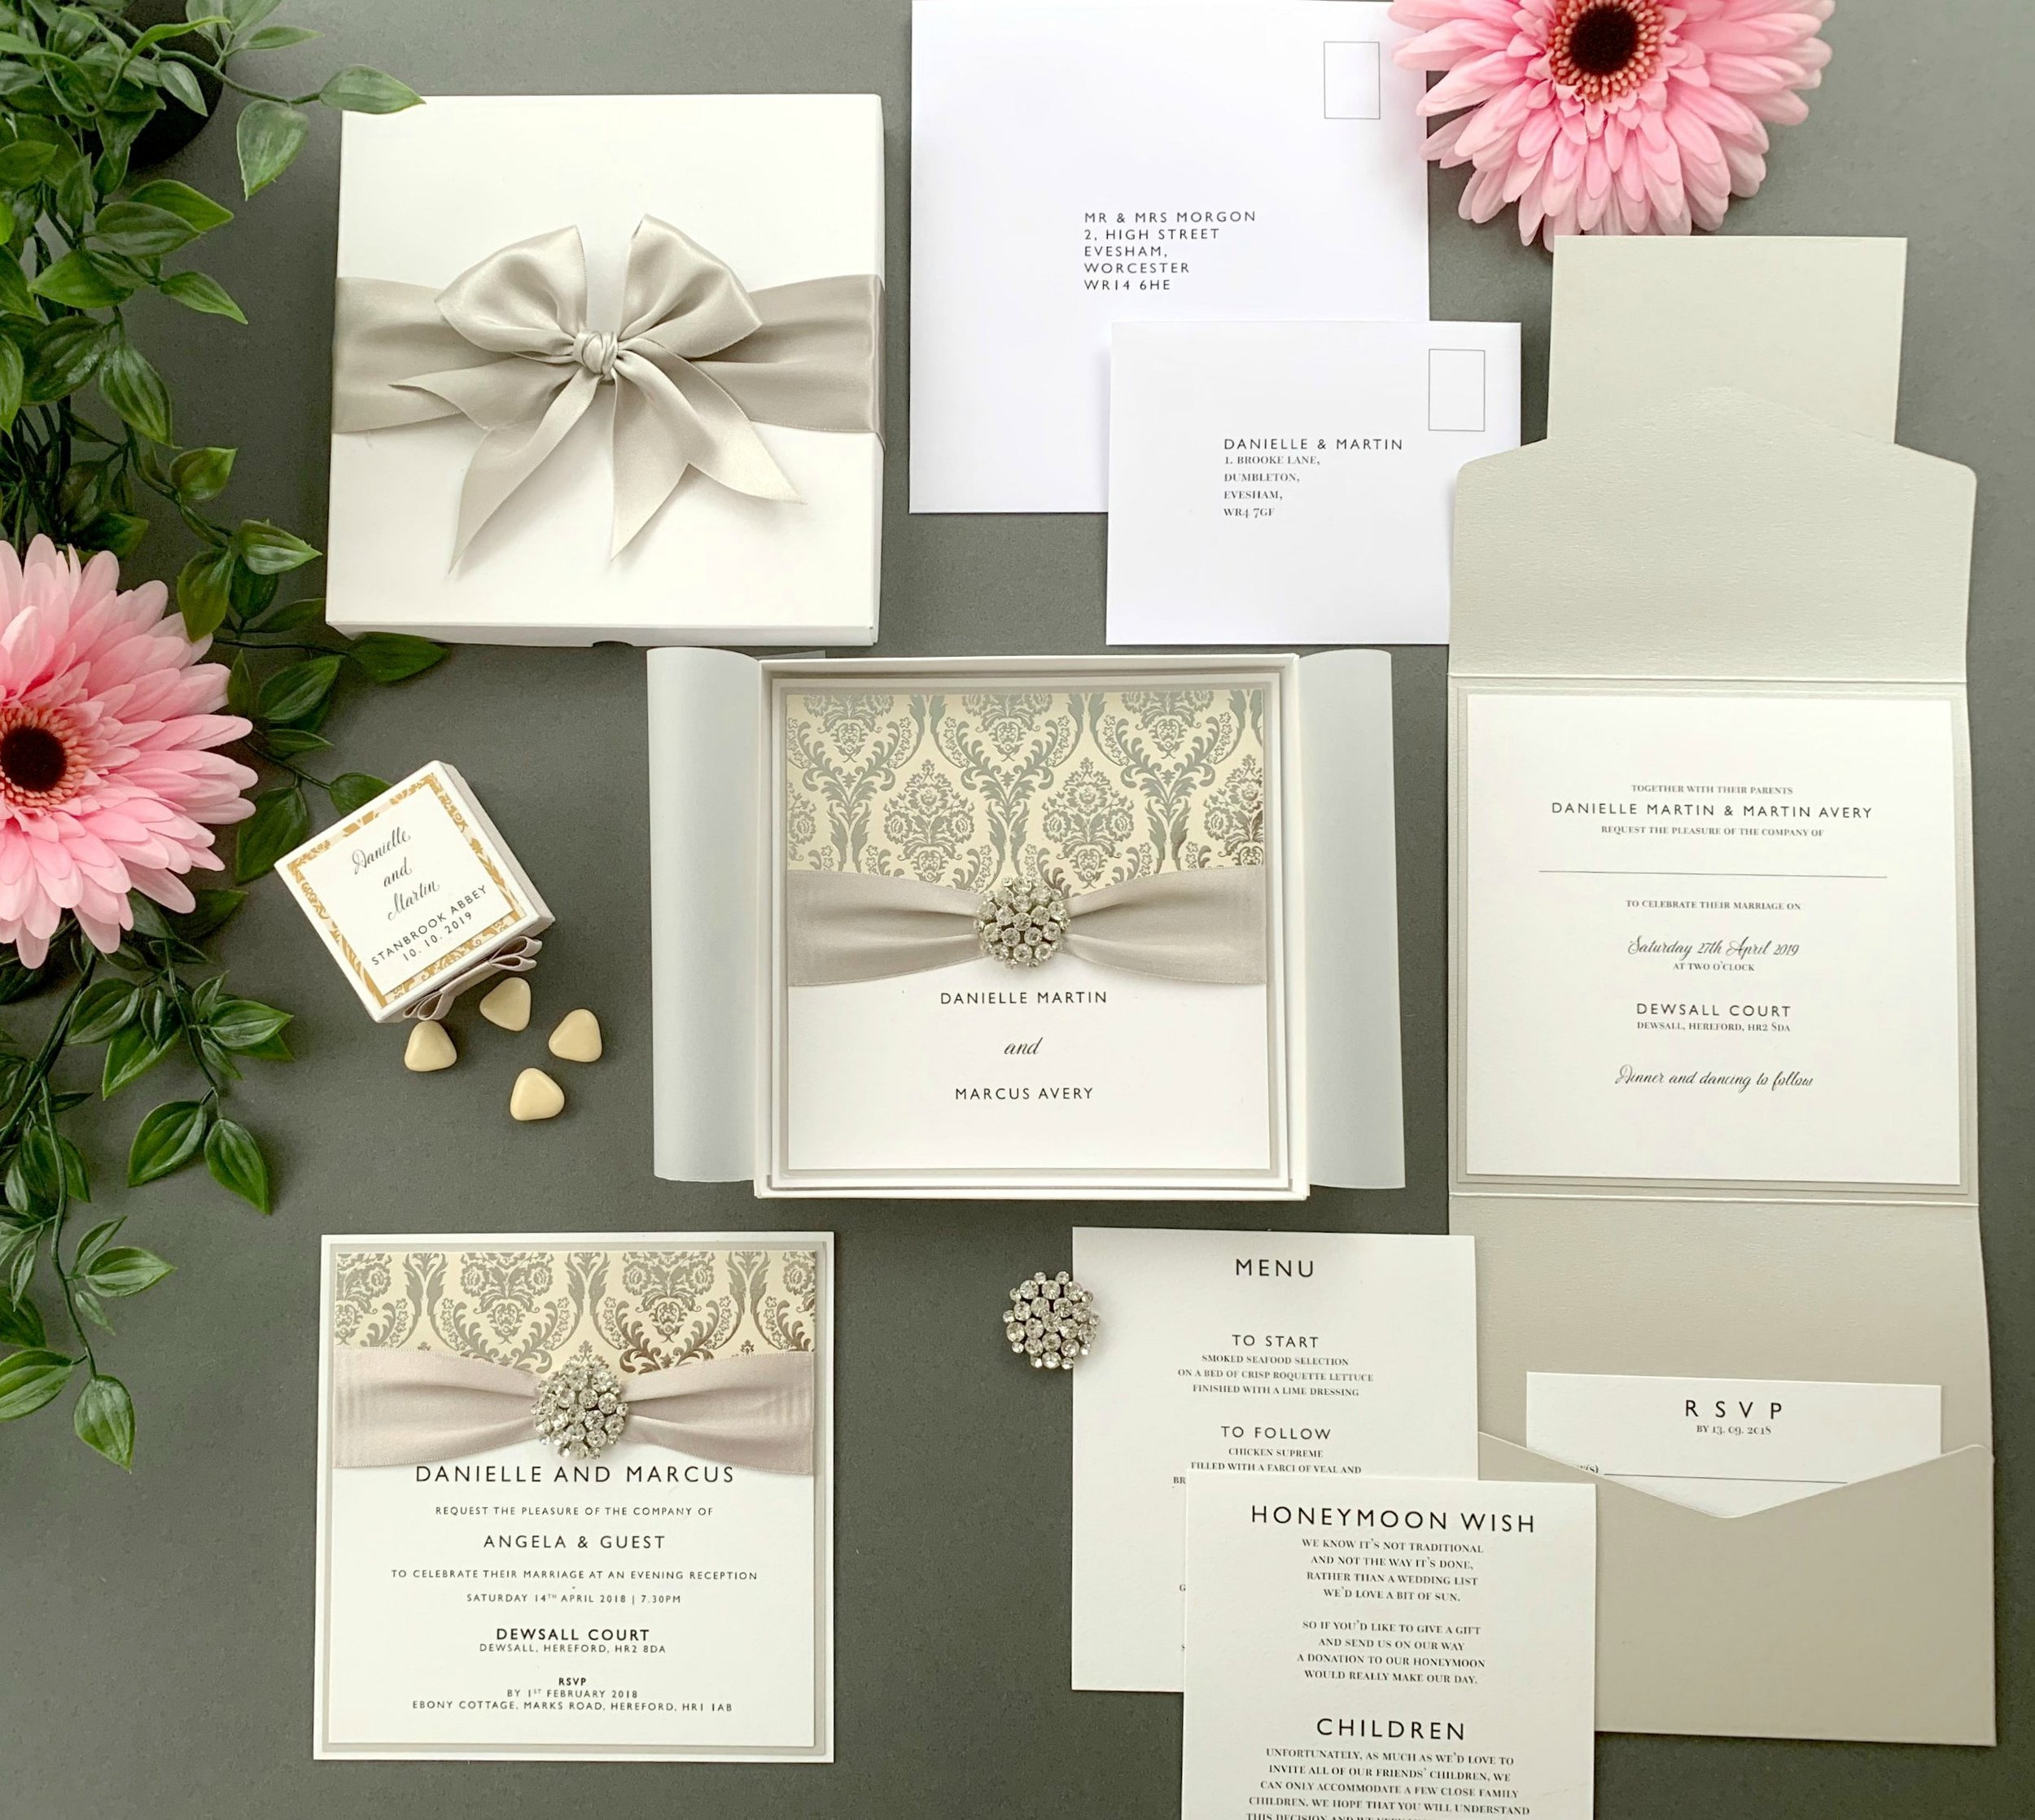 Fully-Handmade Invitations -